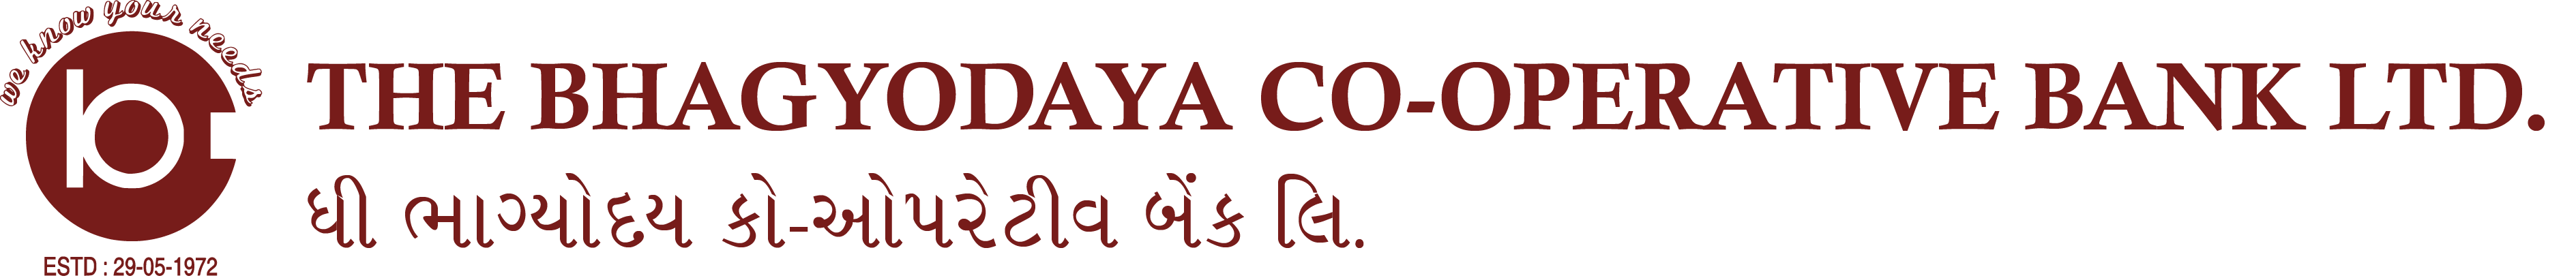 The Bhagyodaya Co-Operative Bank LTD.